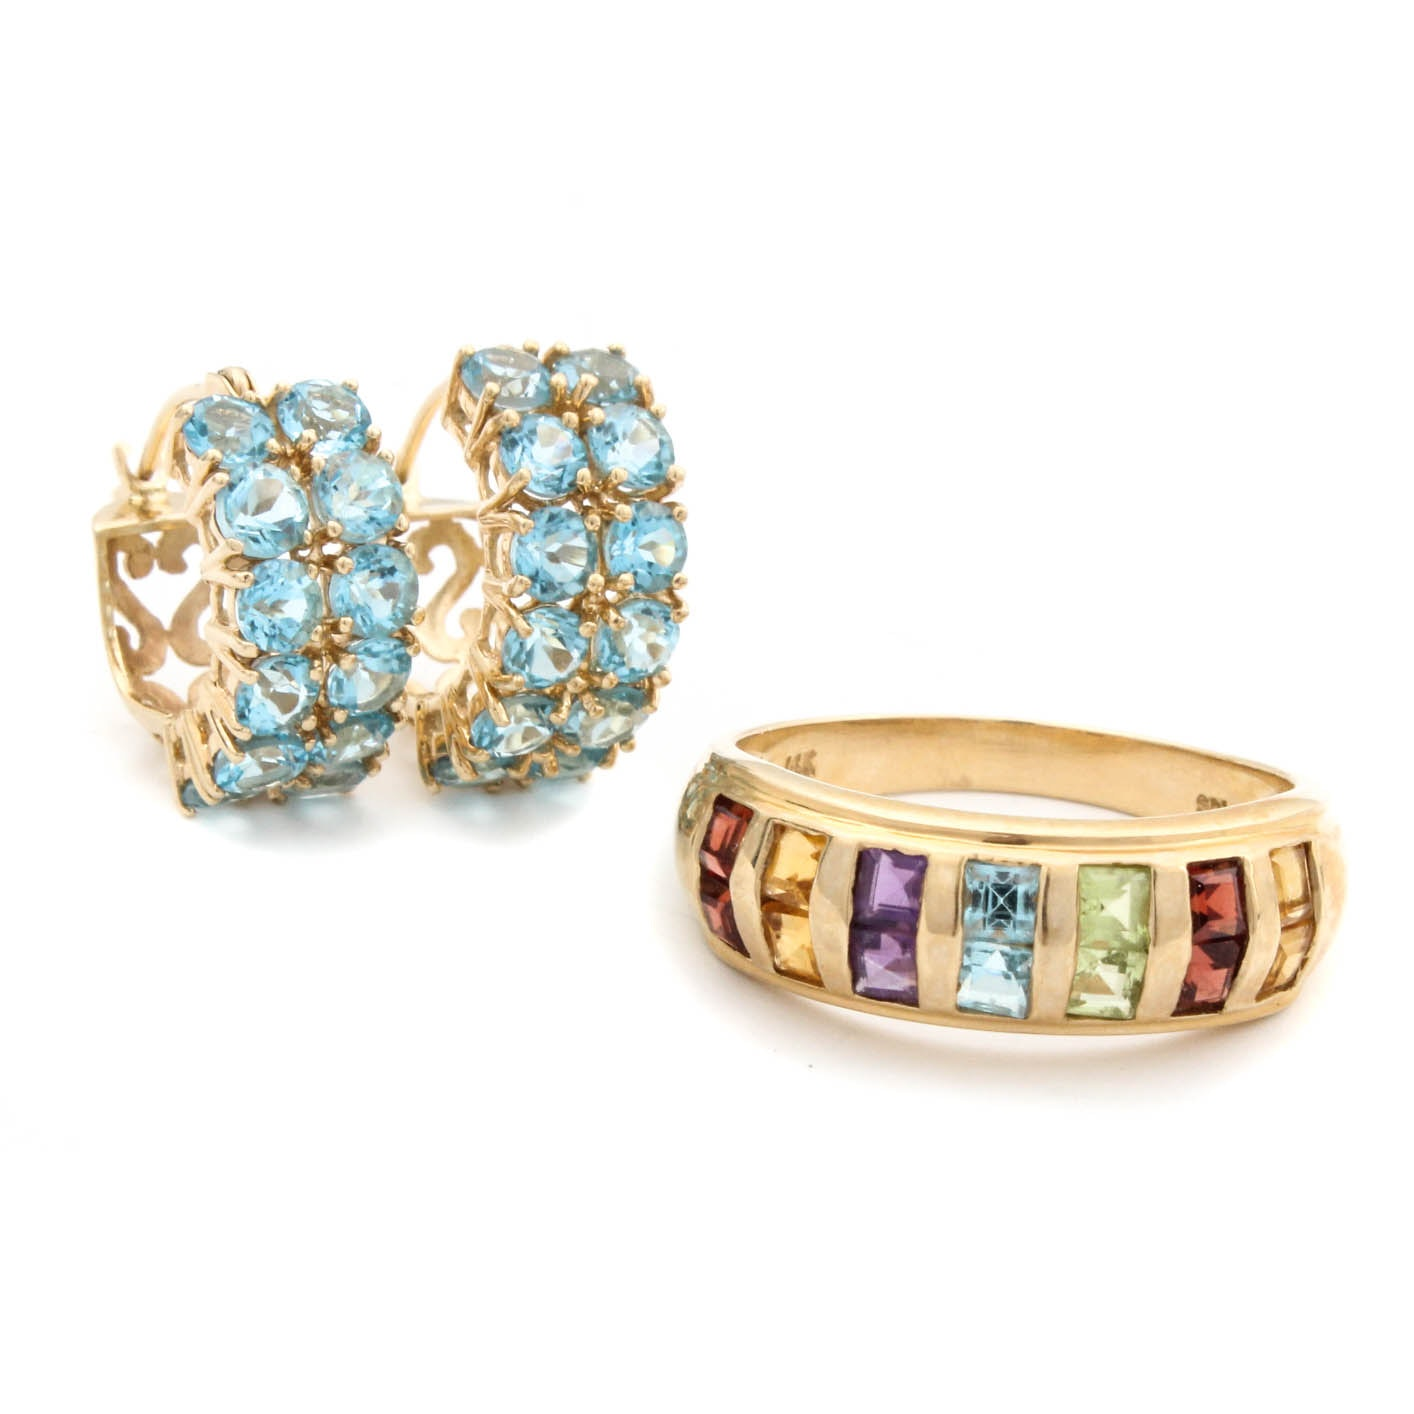 14K Yellow Gold Blue Topaz Earring Hoops and Gemstone Ring